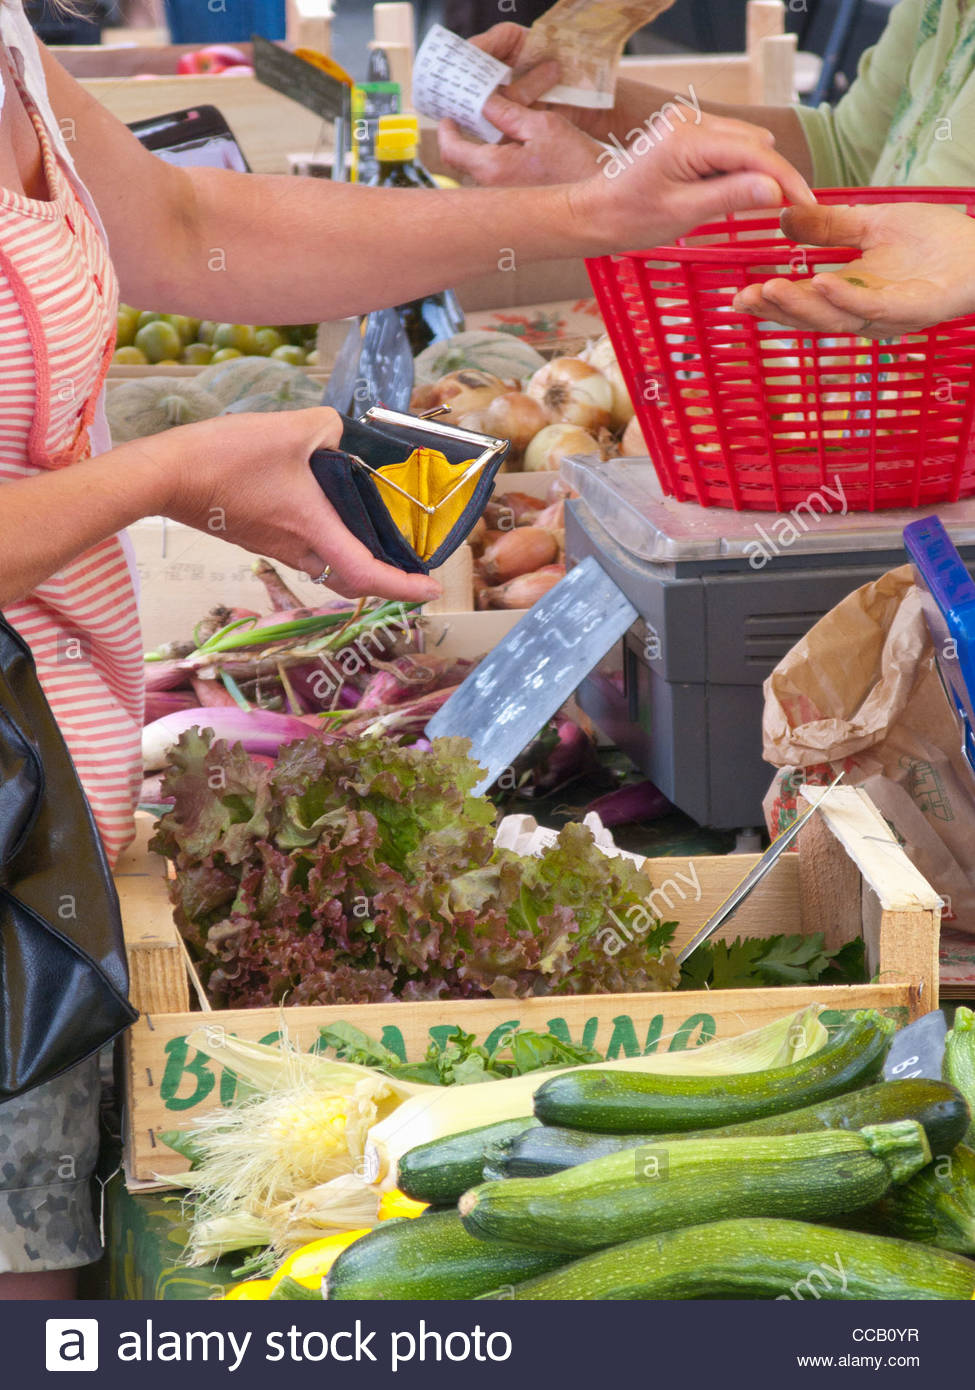 Woman holding coin purse buying vegetables from market - Stock Image